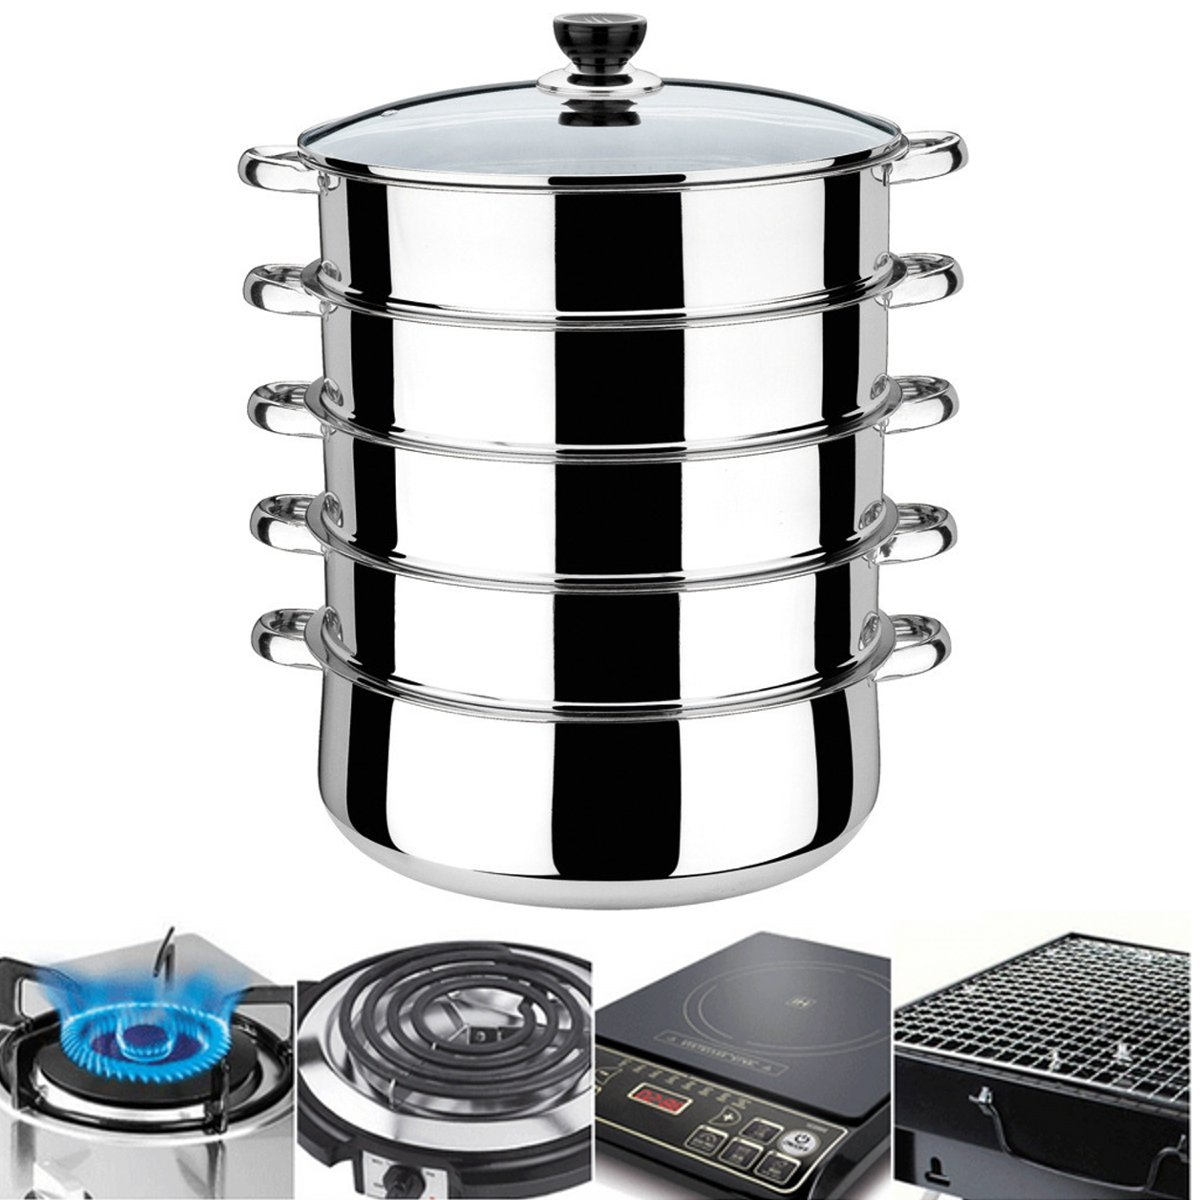 KingSo 5 Tier Stainless Steel Steamer Pot,Basket Metal Steaming Cookware for Crab Seafood Food Vegetable Bamboo,30x 41cm